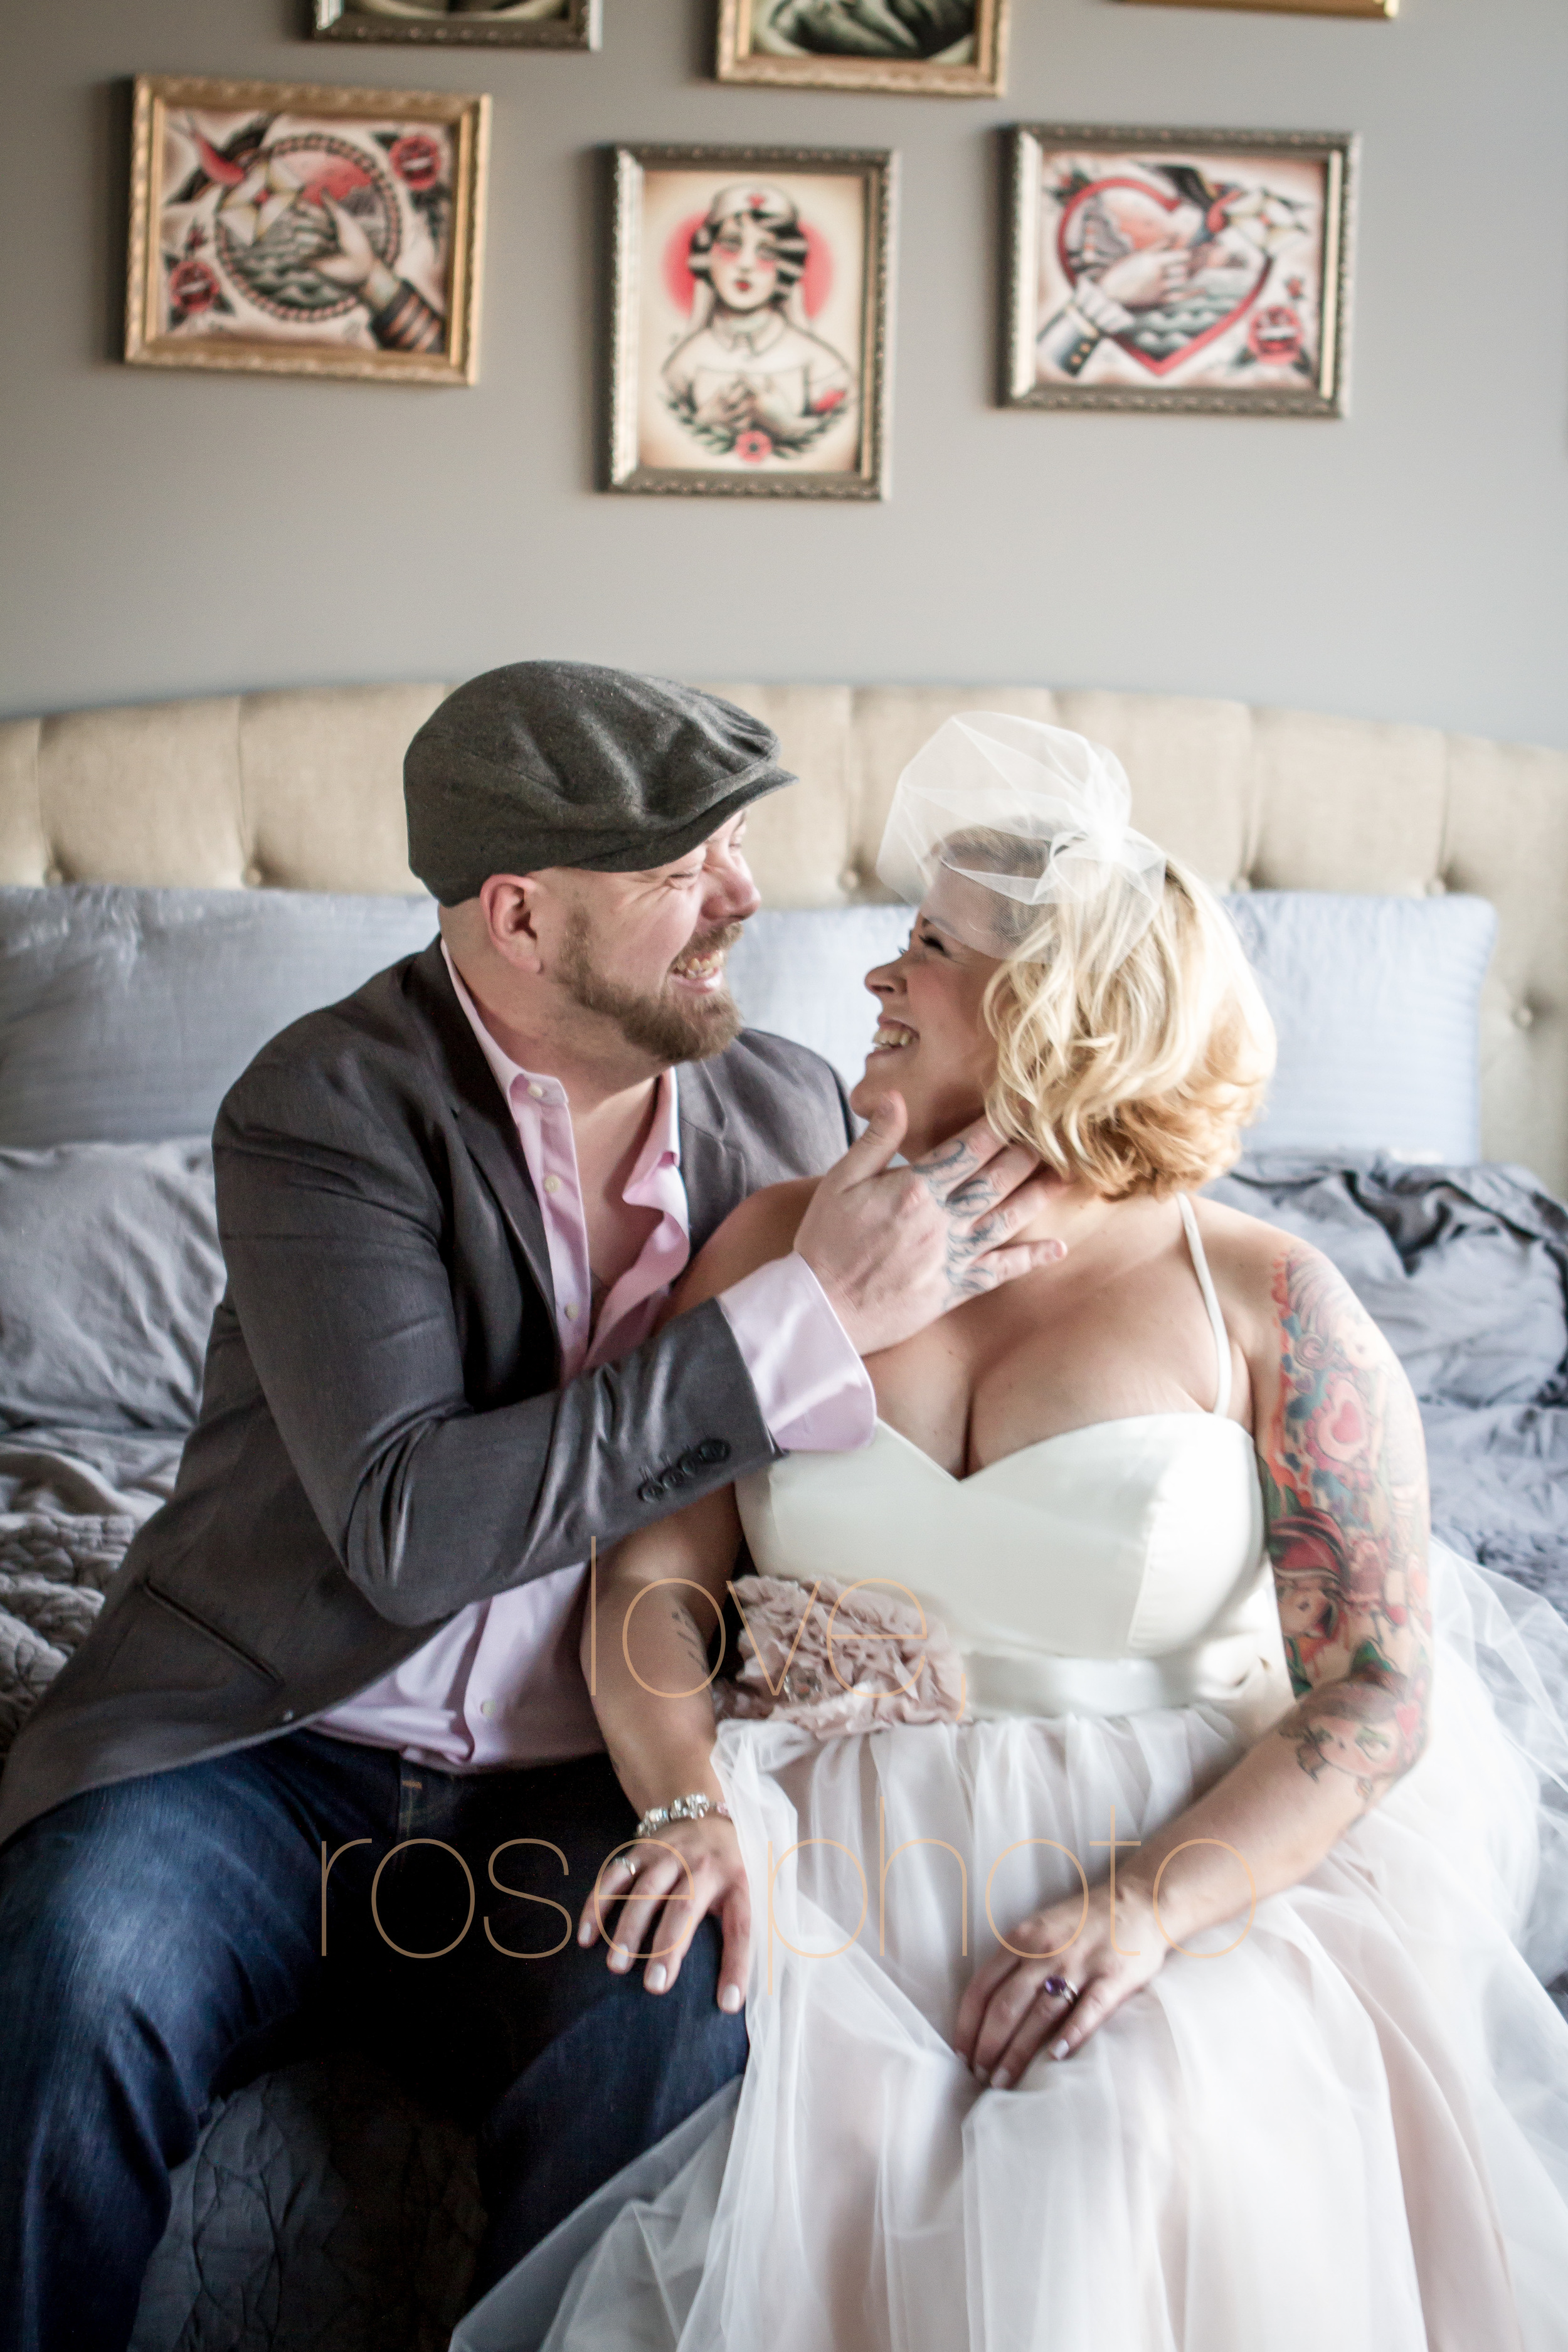 nikki + mike west loop vintage classic throwback pinup rock and roll tattoo photoshoot engagement wedding photo shoot-005.jpg